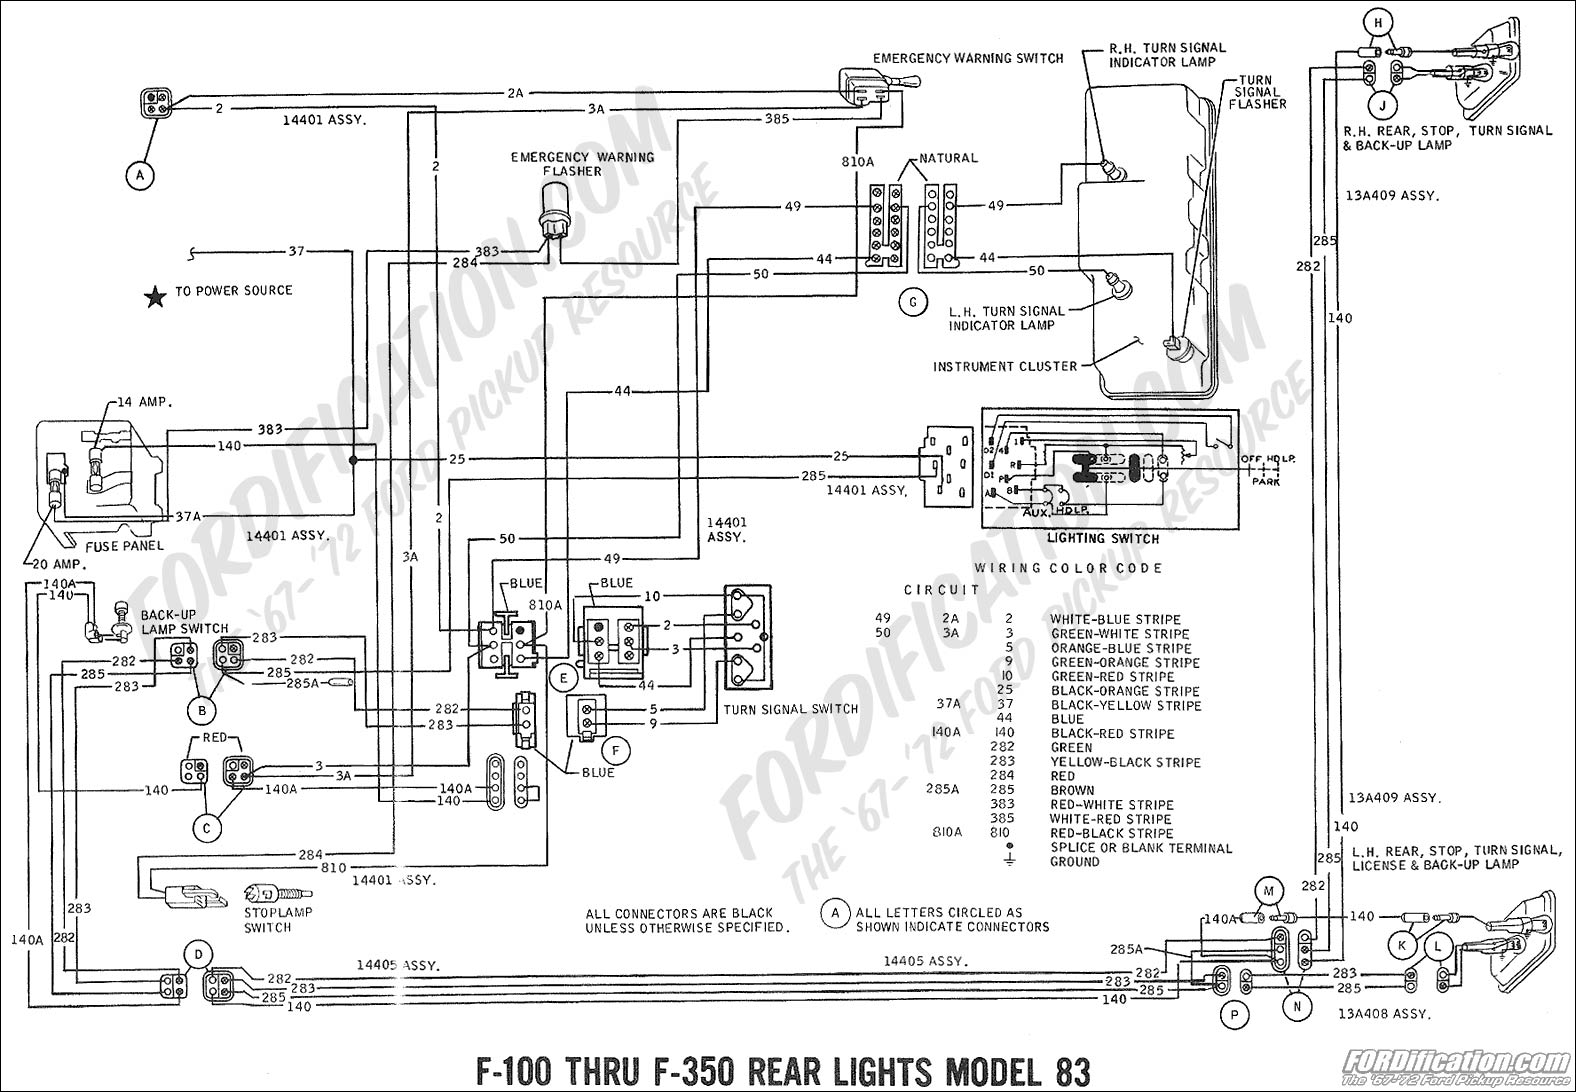 Ford F700 Alternator Wiring | Wiring Diagram  Mustang Alternator Wiring Diagram on 71 chevelle alternator wiring, 68 mustang alternator wiring, 93 mustang alternator wiring, 89 mustang alternator wiring, 68 camaro alternator wiring, 92 mustang alternator wiring, 1965 mustang alternator wiring, 93 ford alternator wiring, 86 mustang alternator wiring, 67 mustang alternator wiring, 91 mustang alternator wiring,